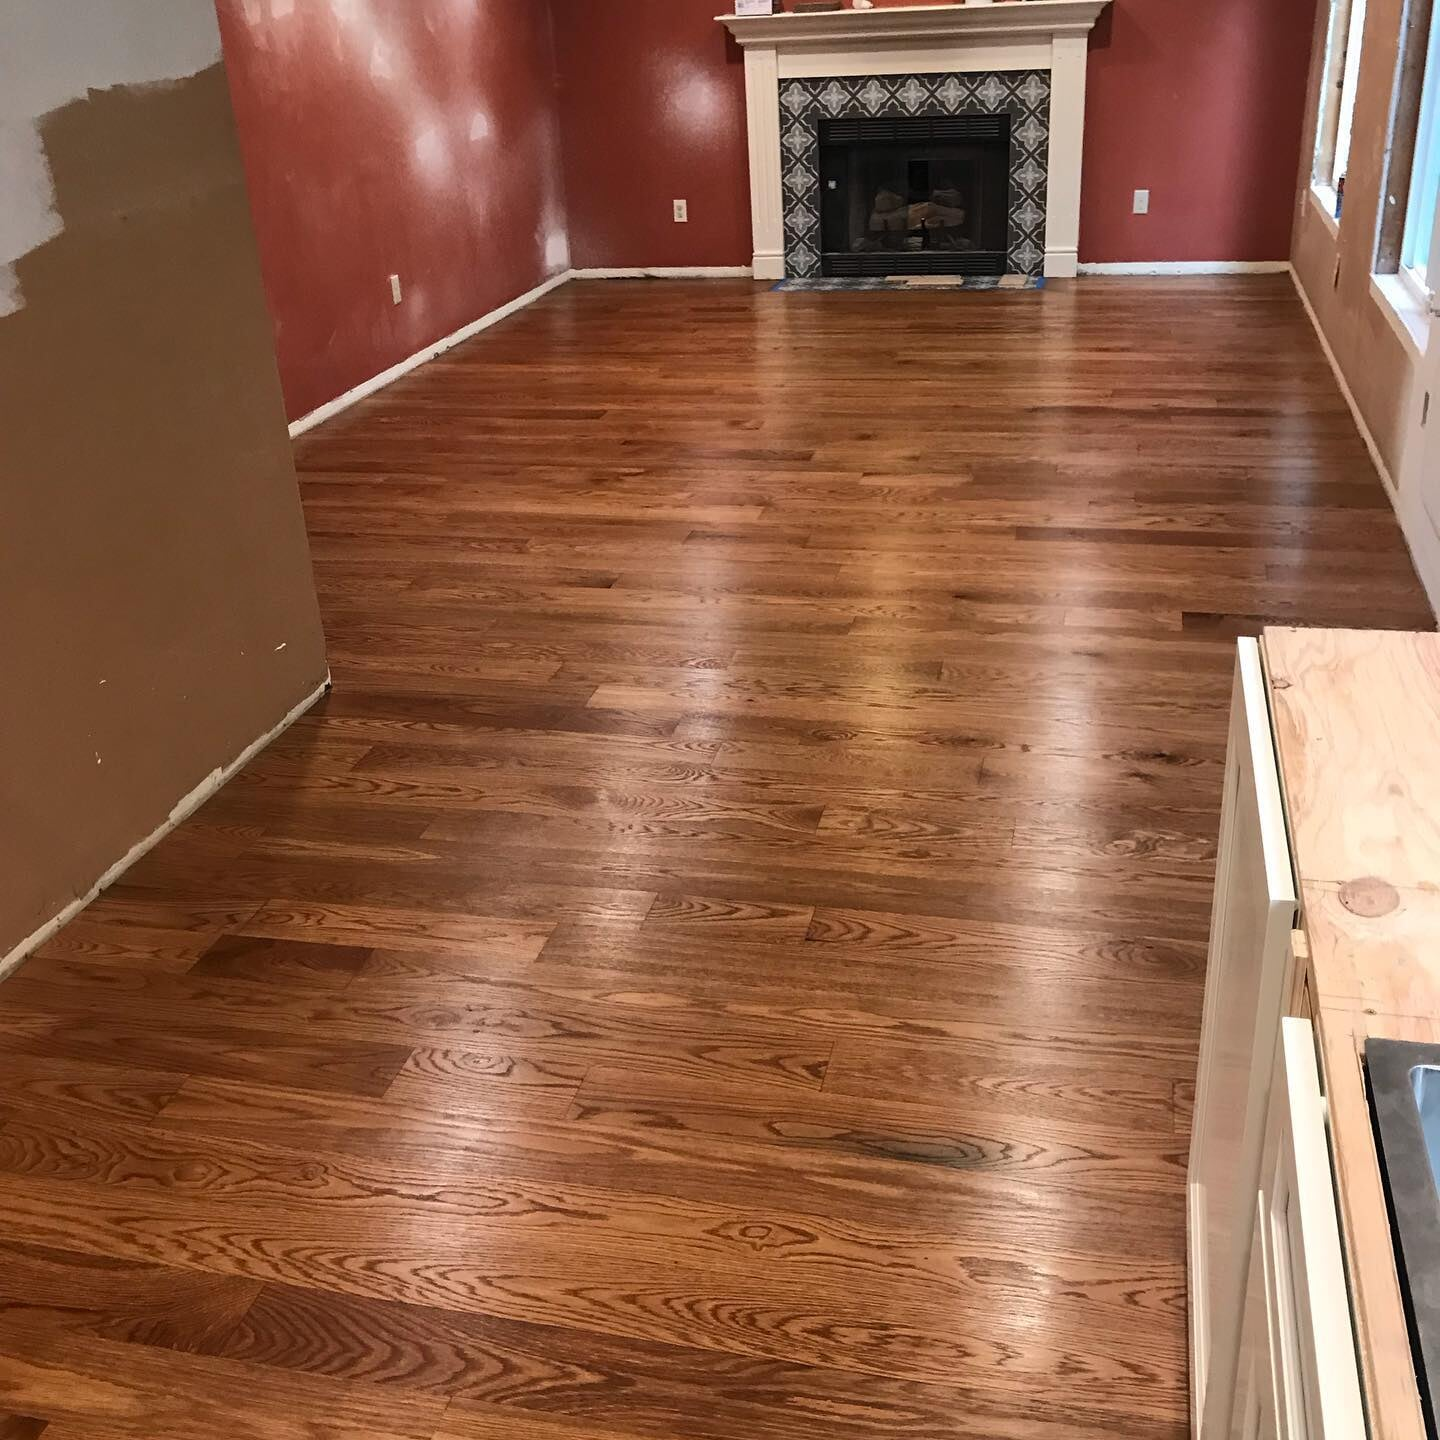 Hardwood flooring from LeBlanc Floors & Interiors in Northgate, WA